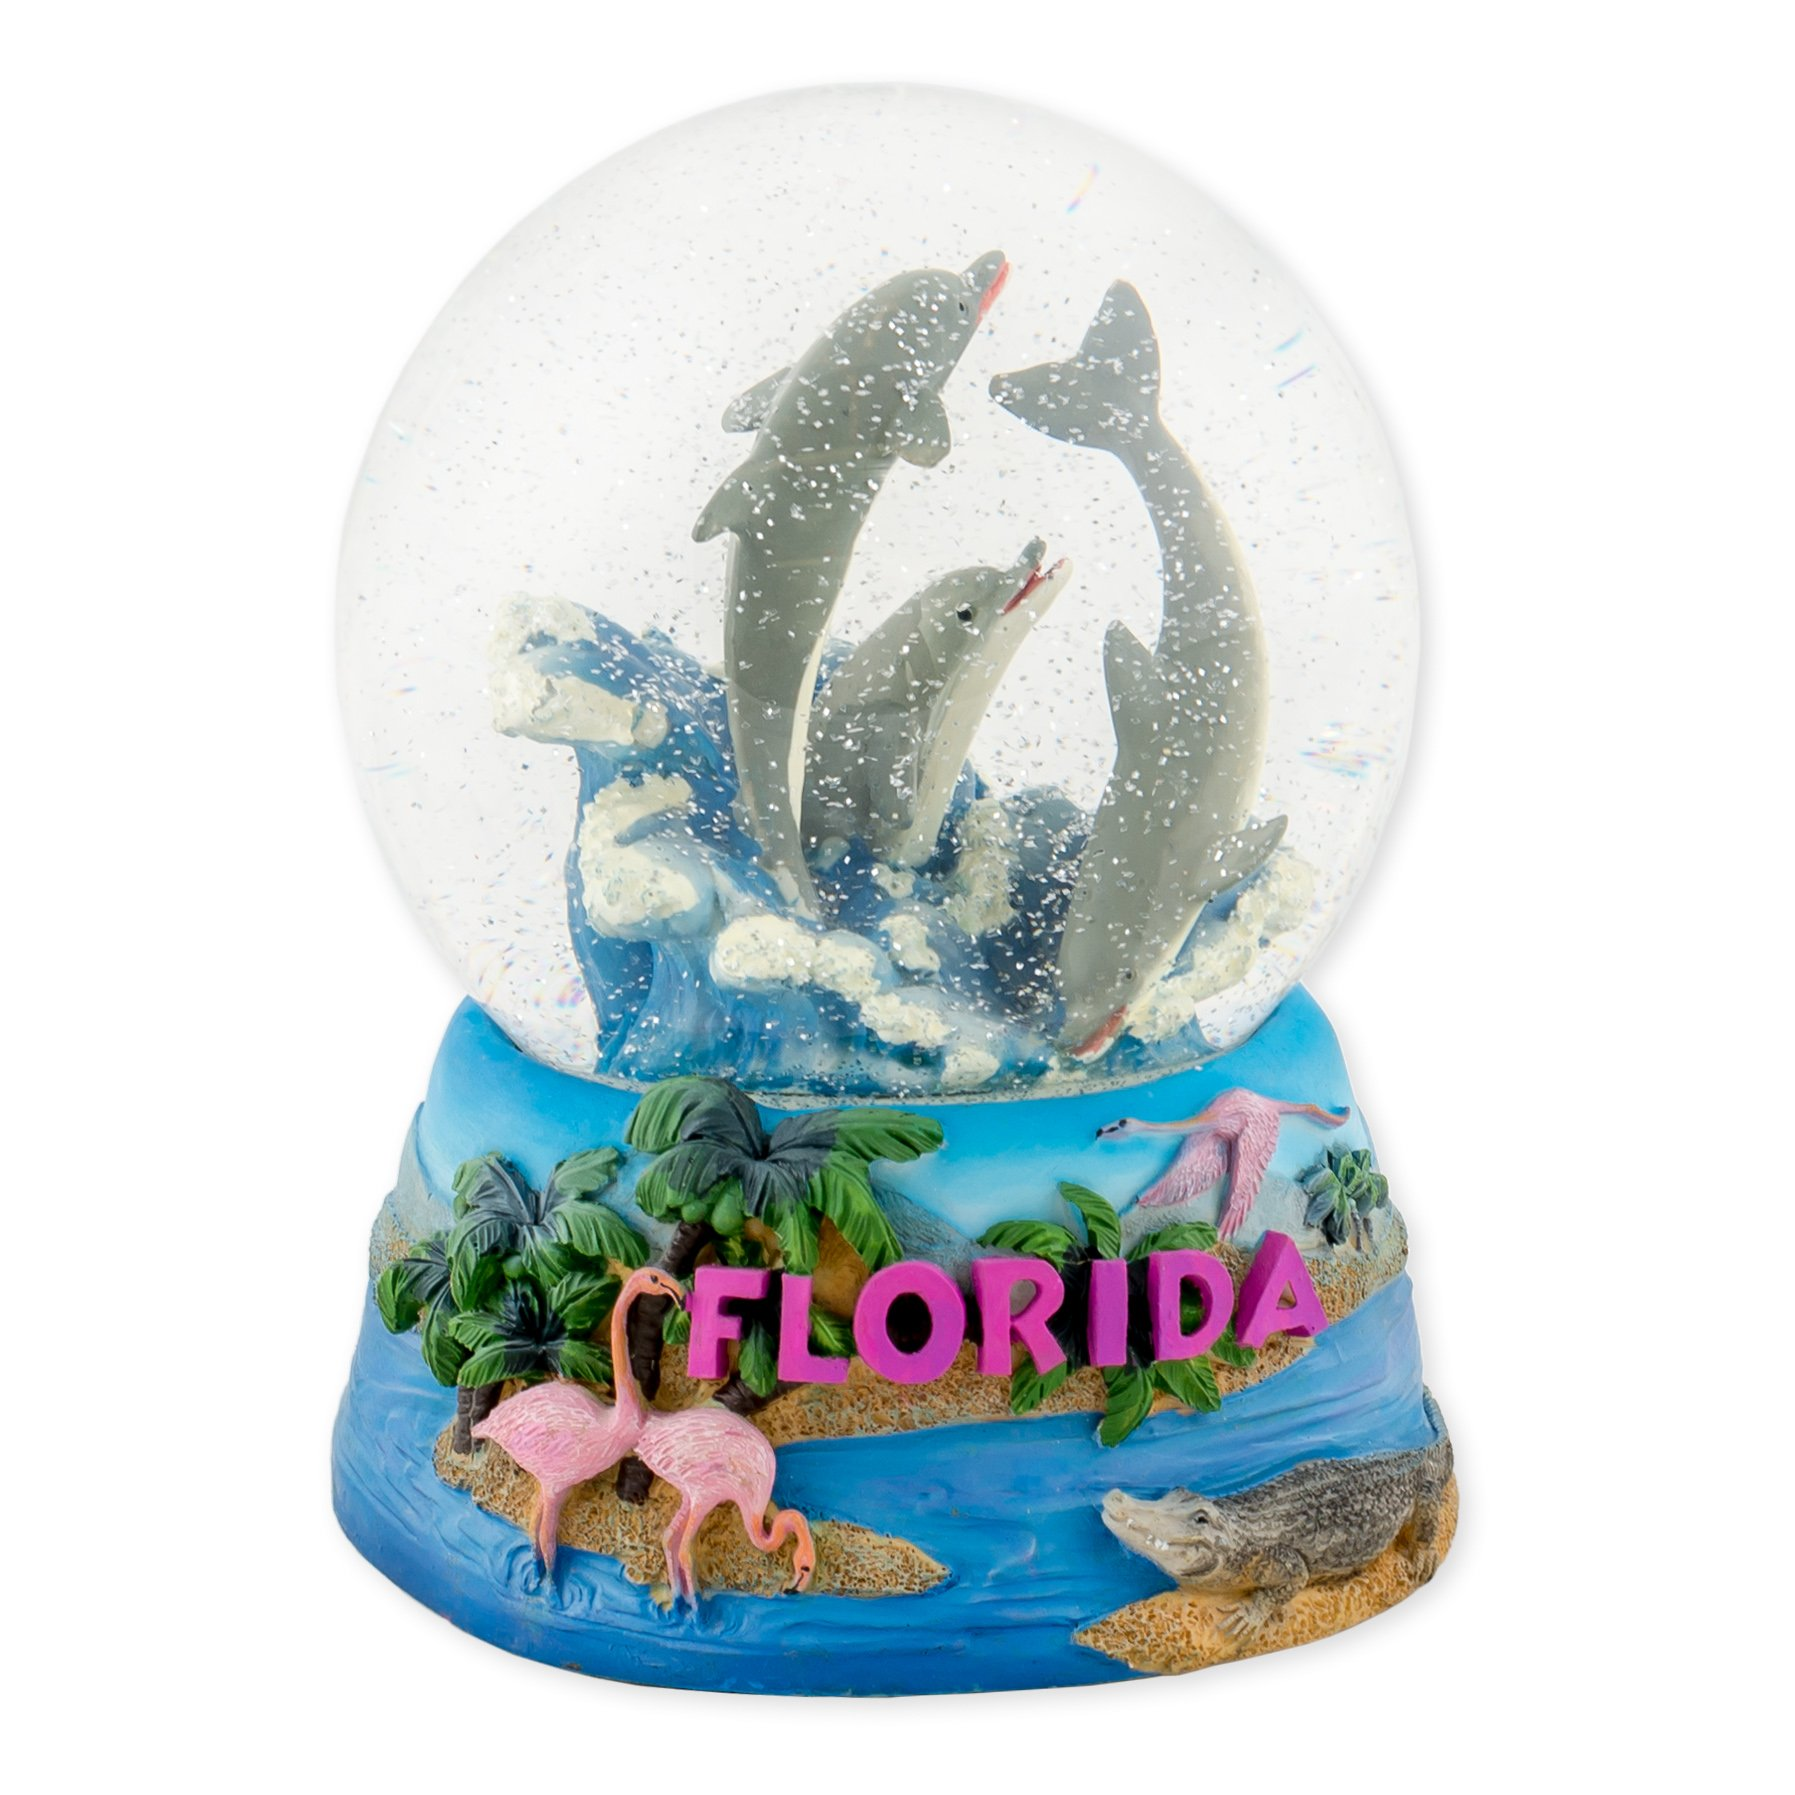 Florida Dolphins 100mm Resin Glitter Water Globe Plays Tune Sunshine on My Shoulders